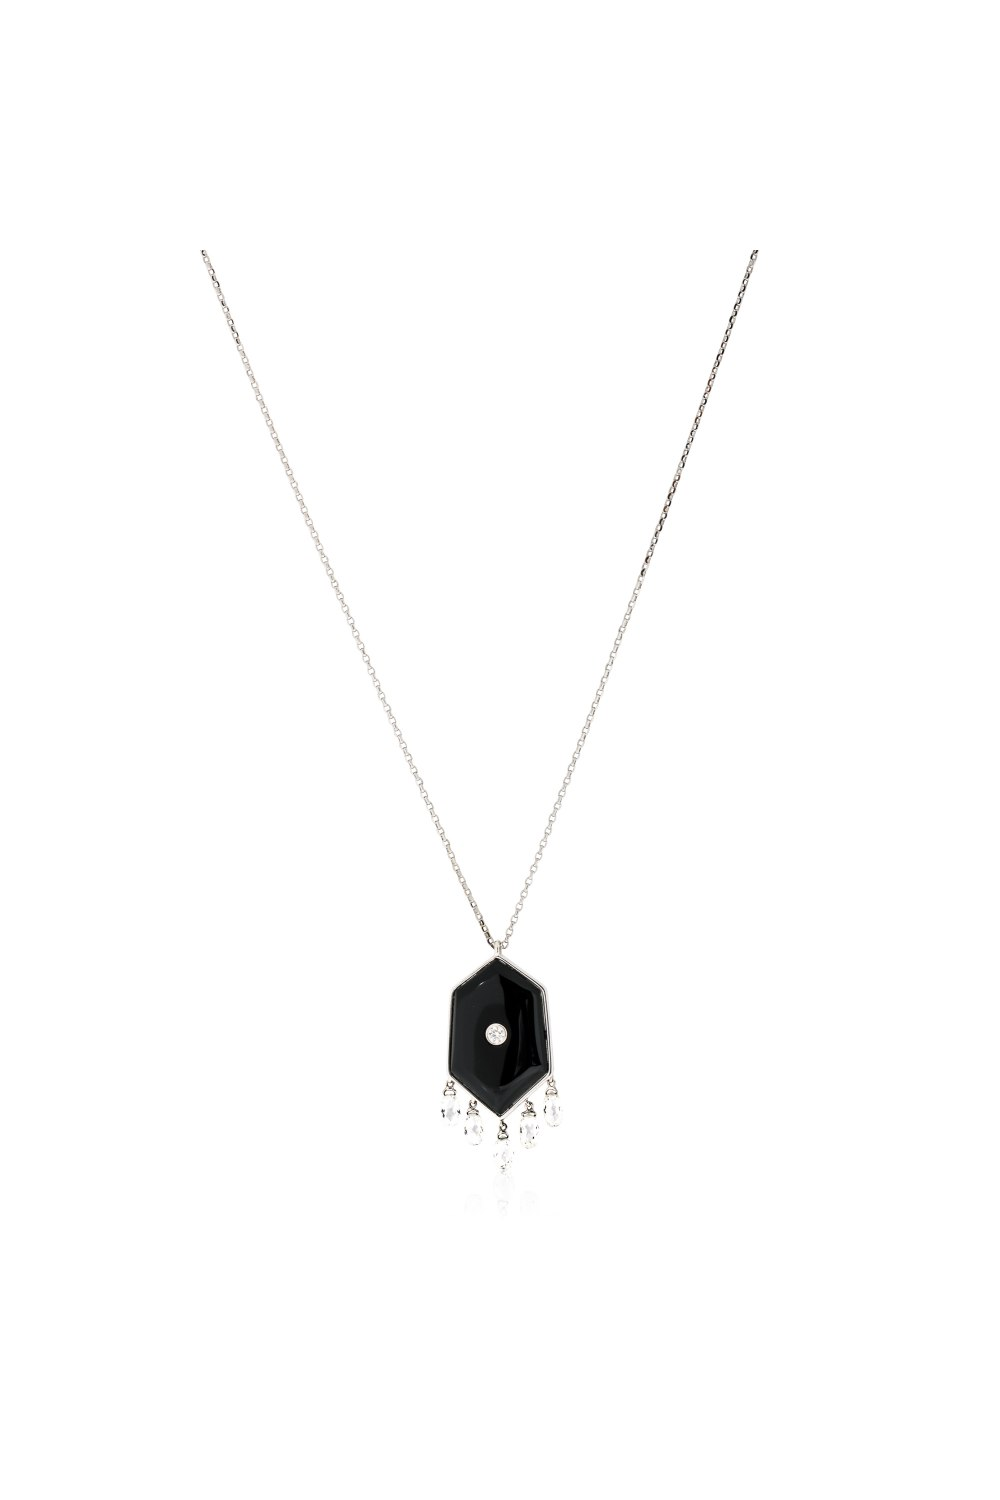 Kessaris-Black Onyx Diamond Pendant Necklace